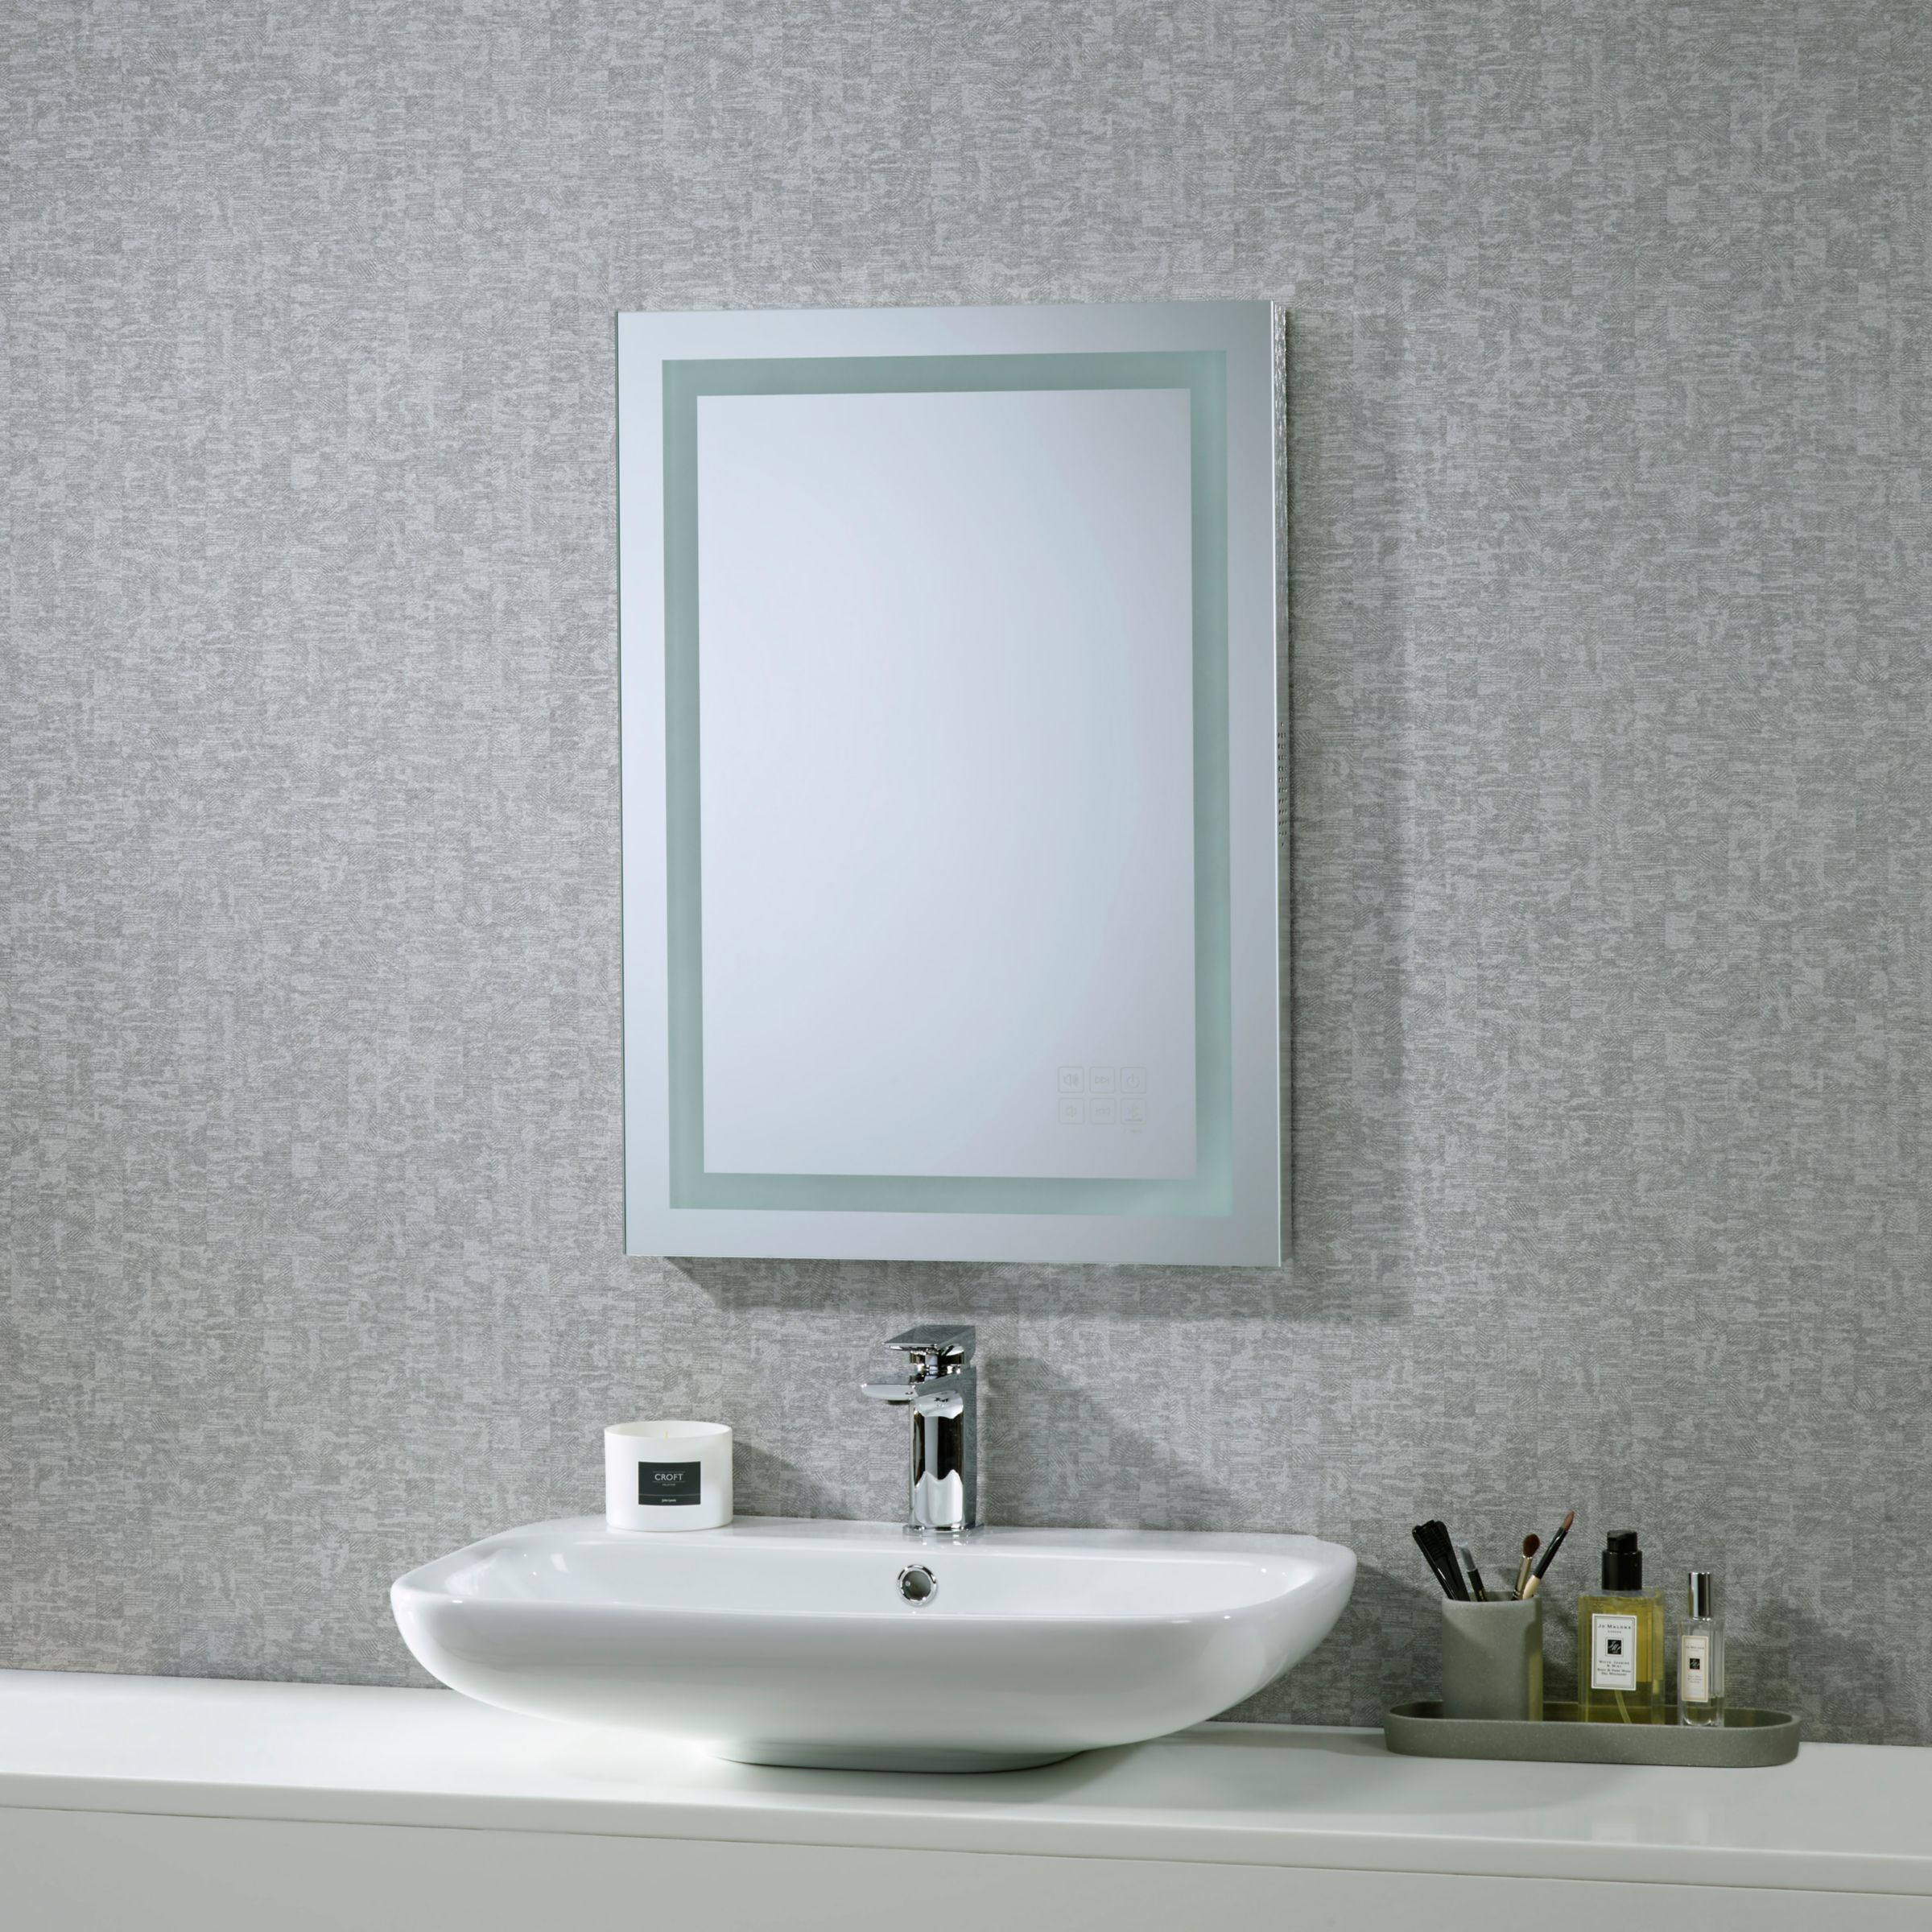 Roper Rhodes Roper Rhodes Encore Illuminated Led Bathroom Mirror with Integrated Stereo